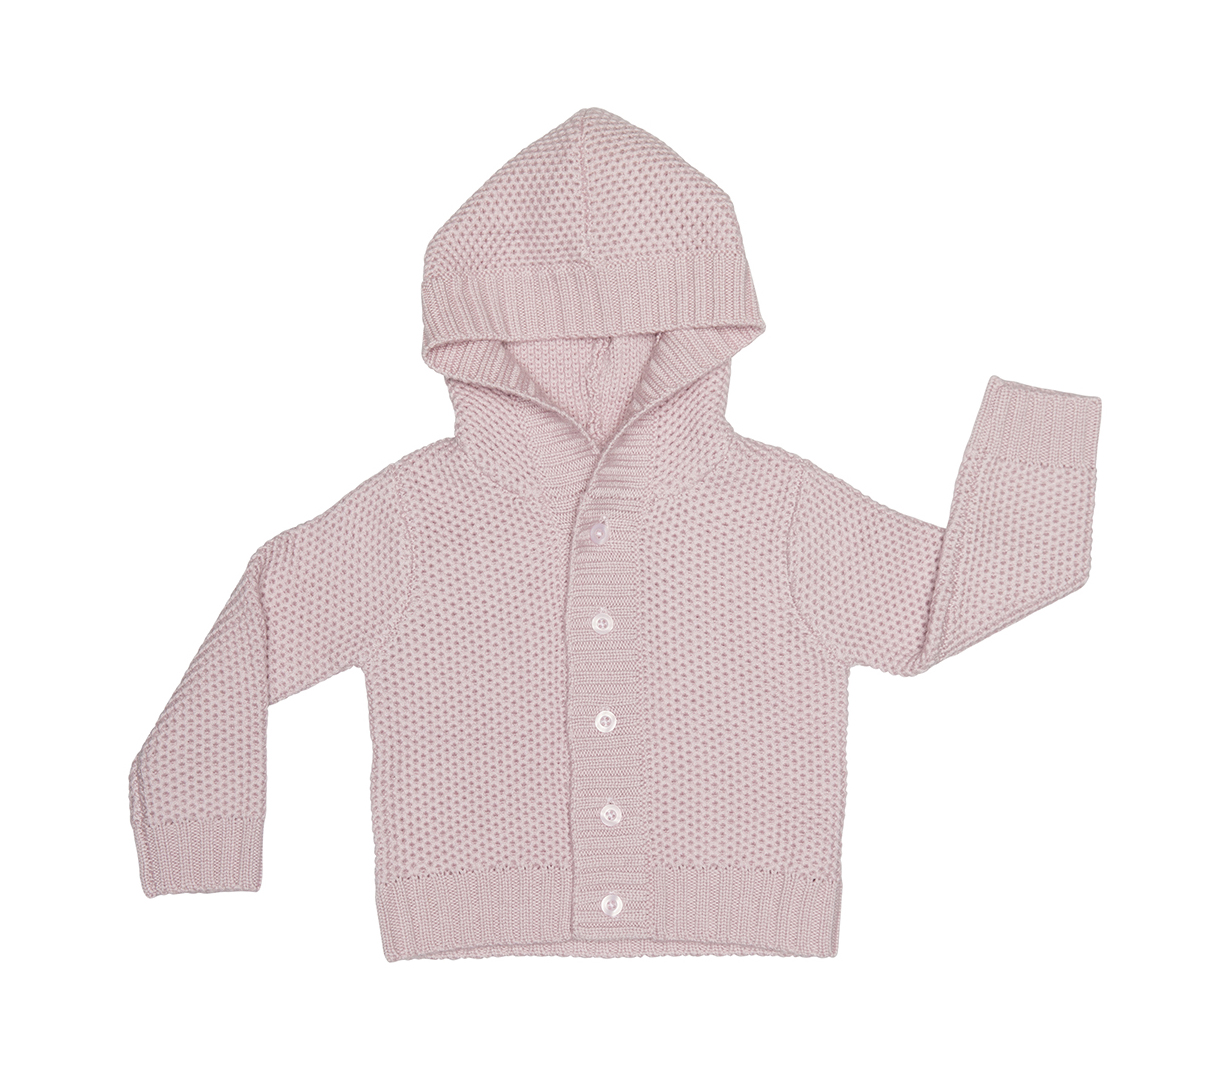 28a0cd6fc Knitted baby wool cardigan with hood - BOCKCph